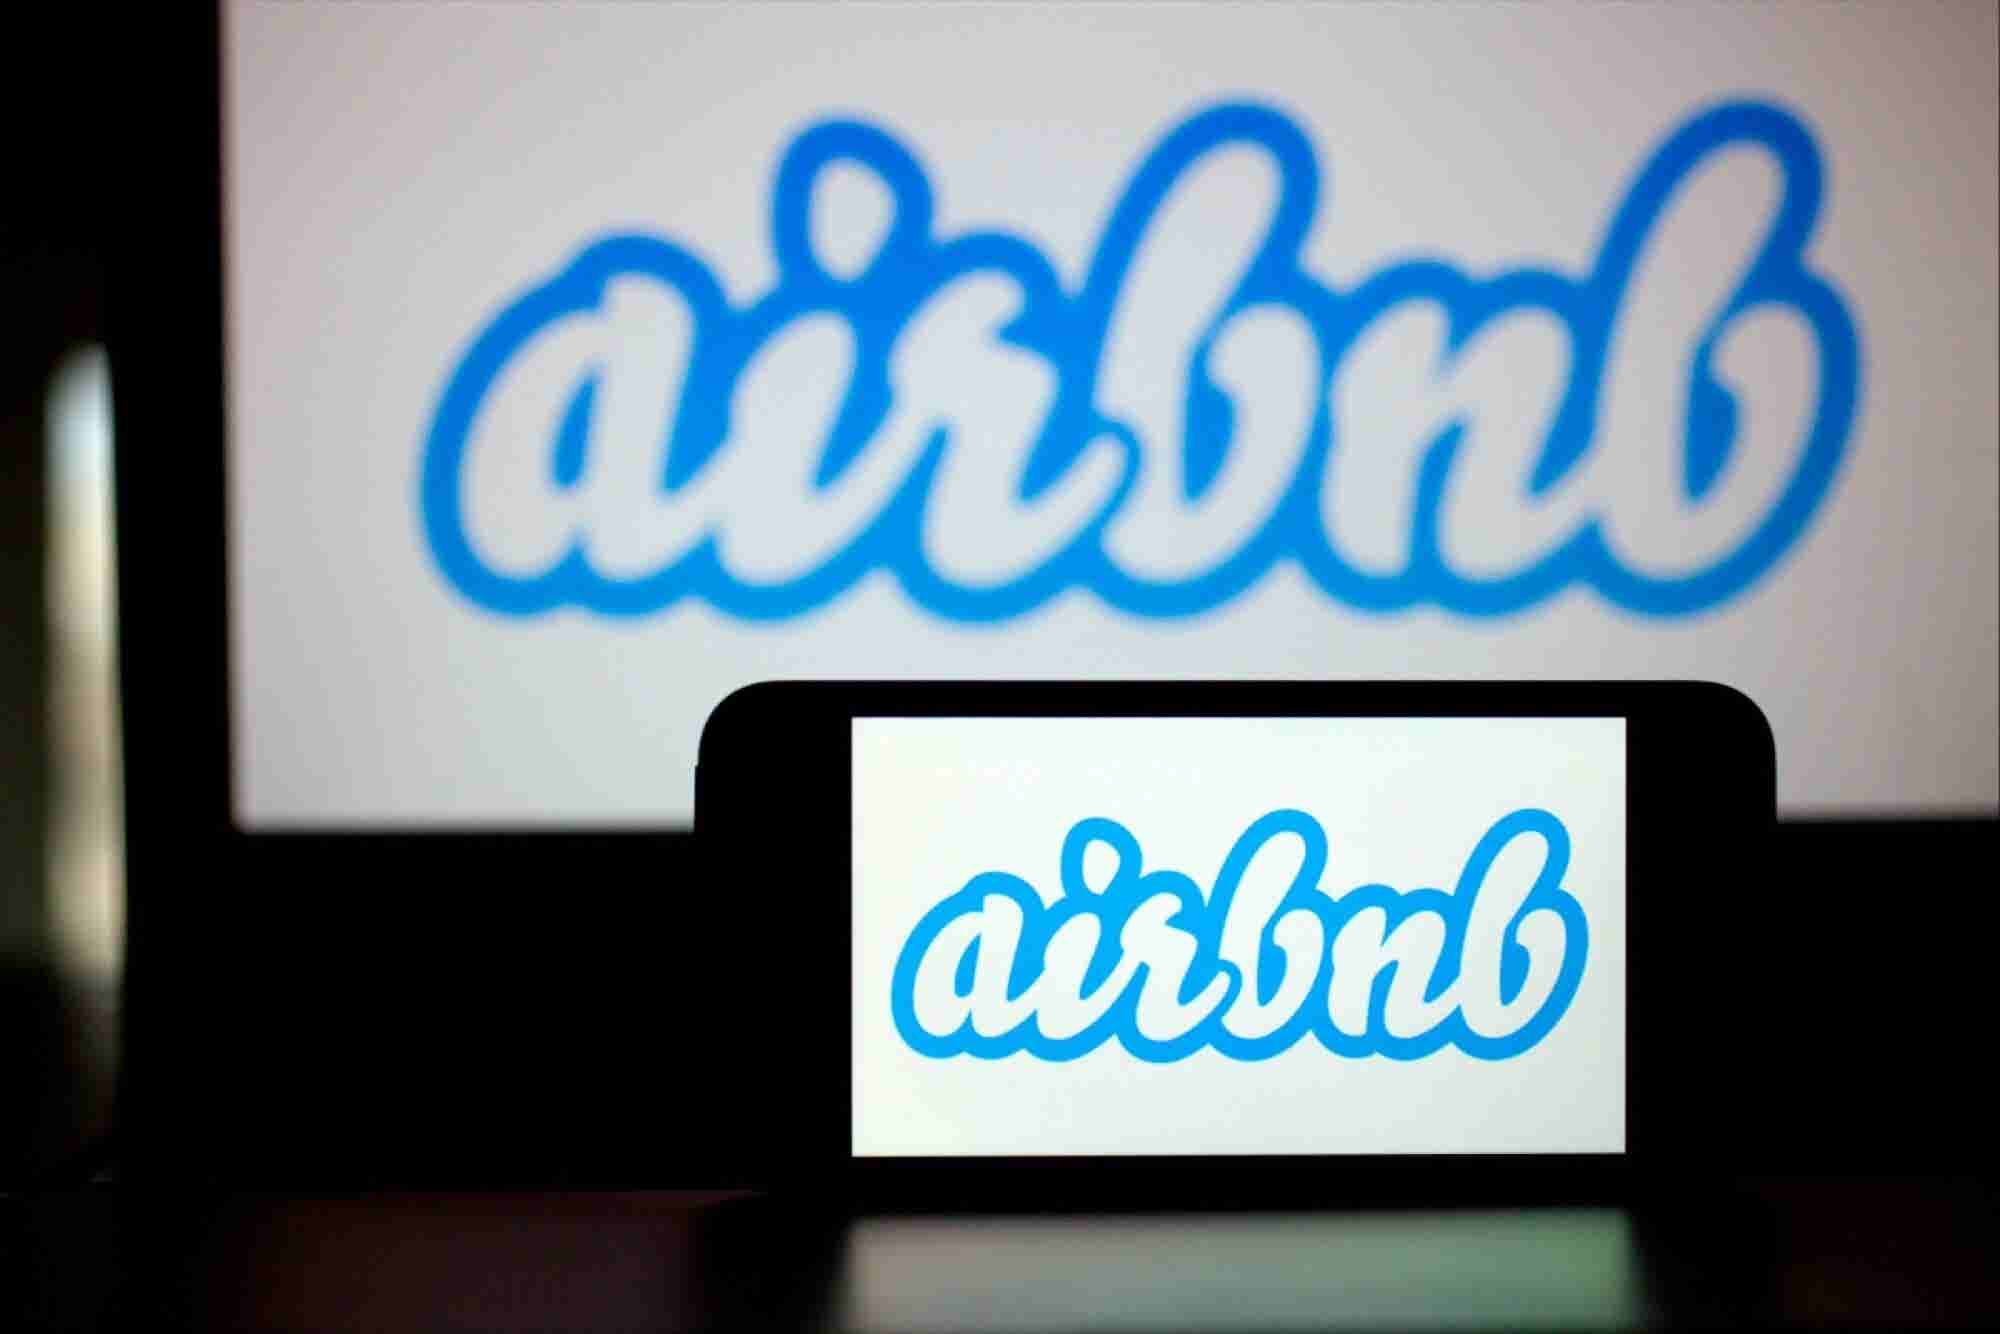 How Much Could You Make on Airbnb? This Calculator Will Tell You.